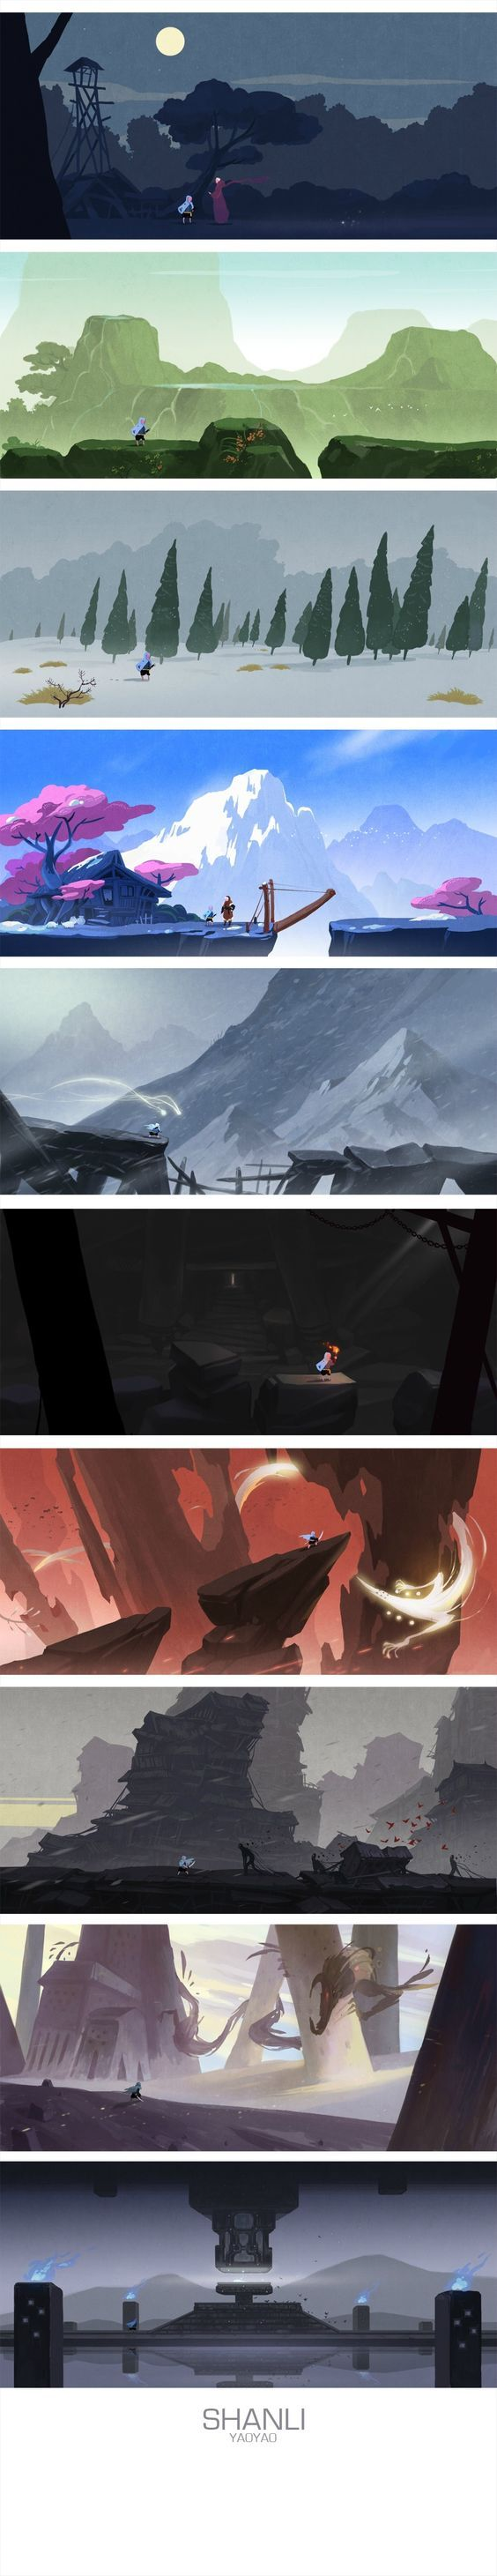 yaoyao - I don't know the game, but these environment designs are awe inspiring.